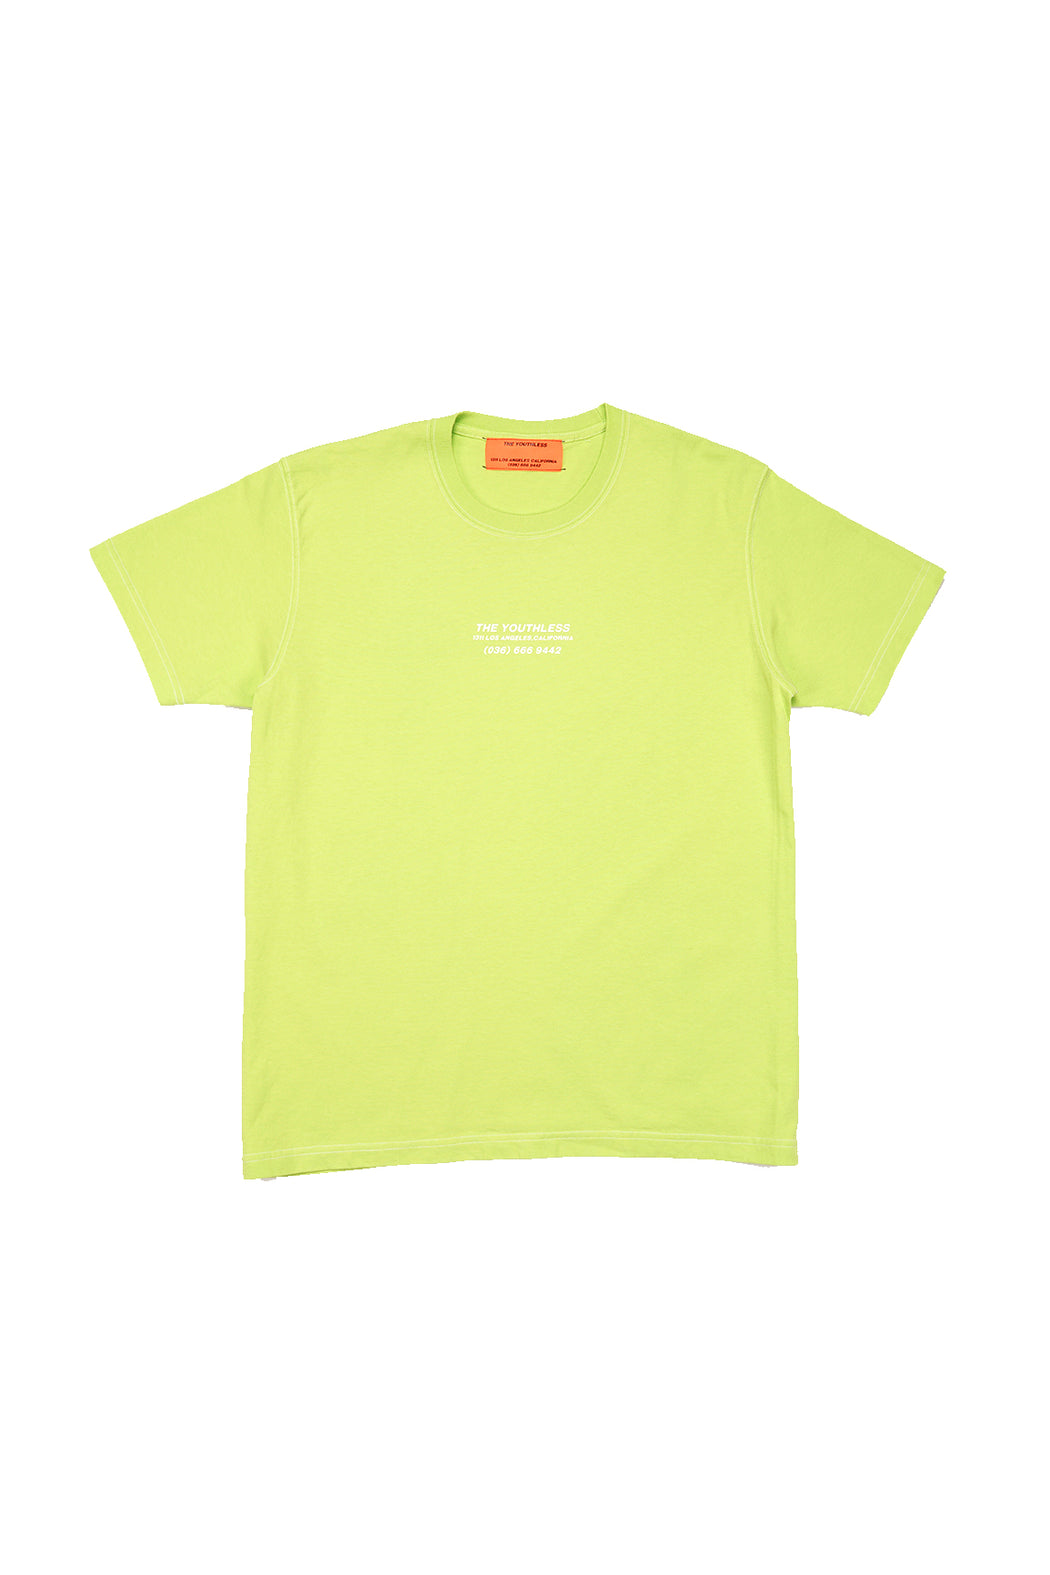 Classic Back S/S Tee - Green